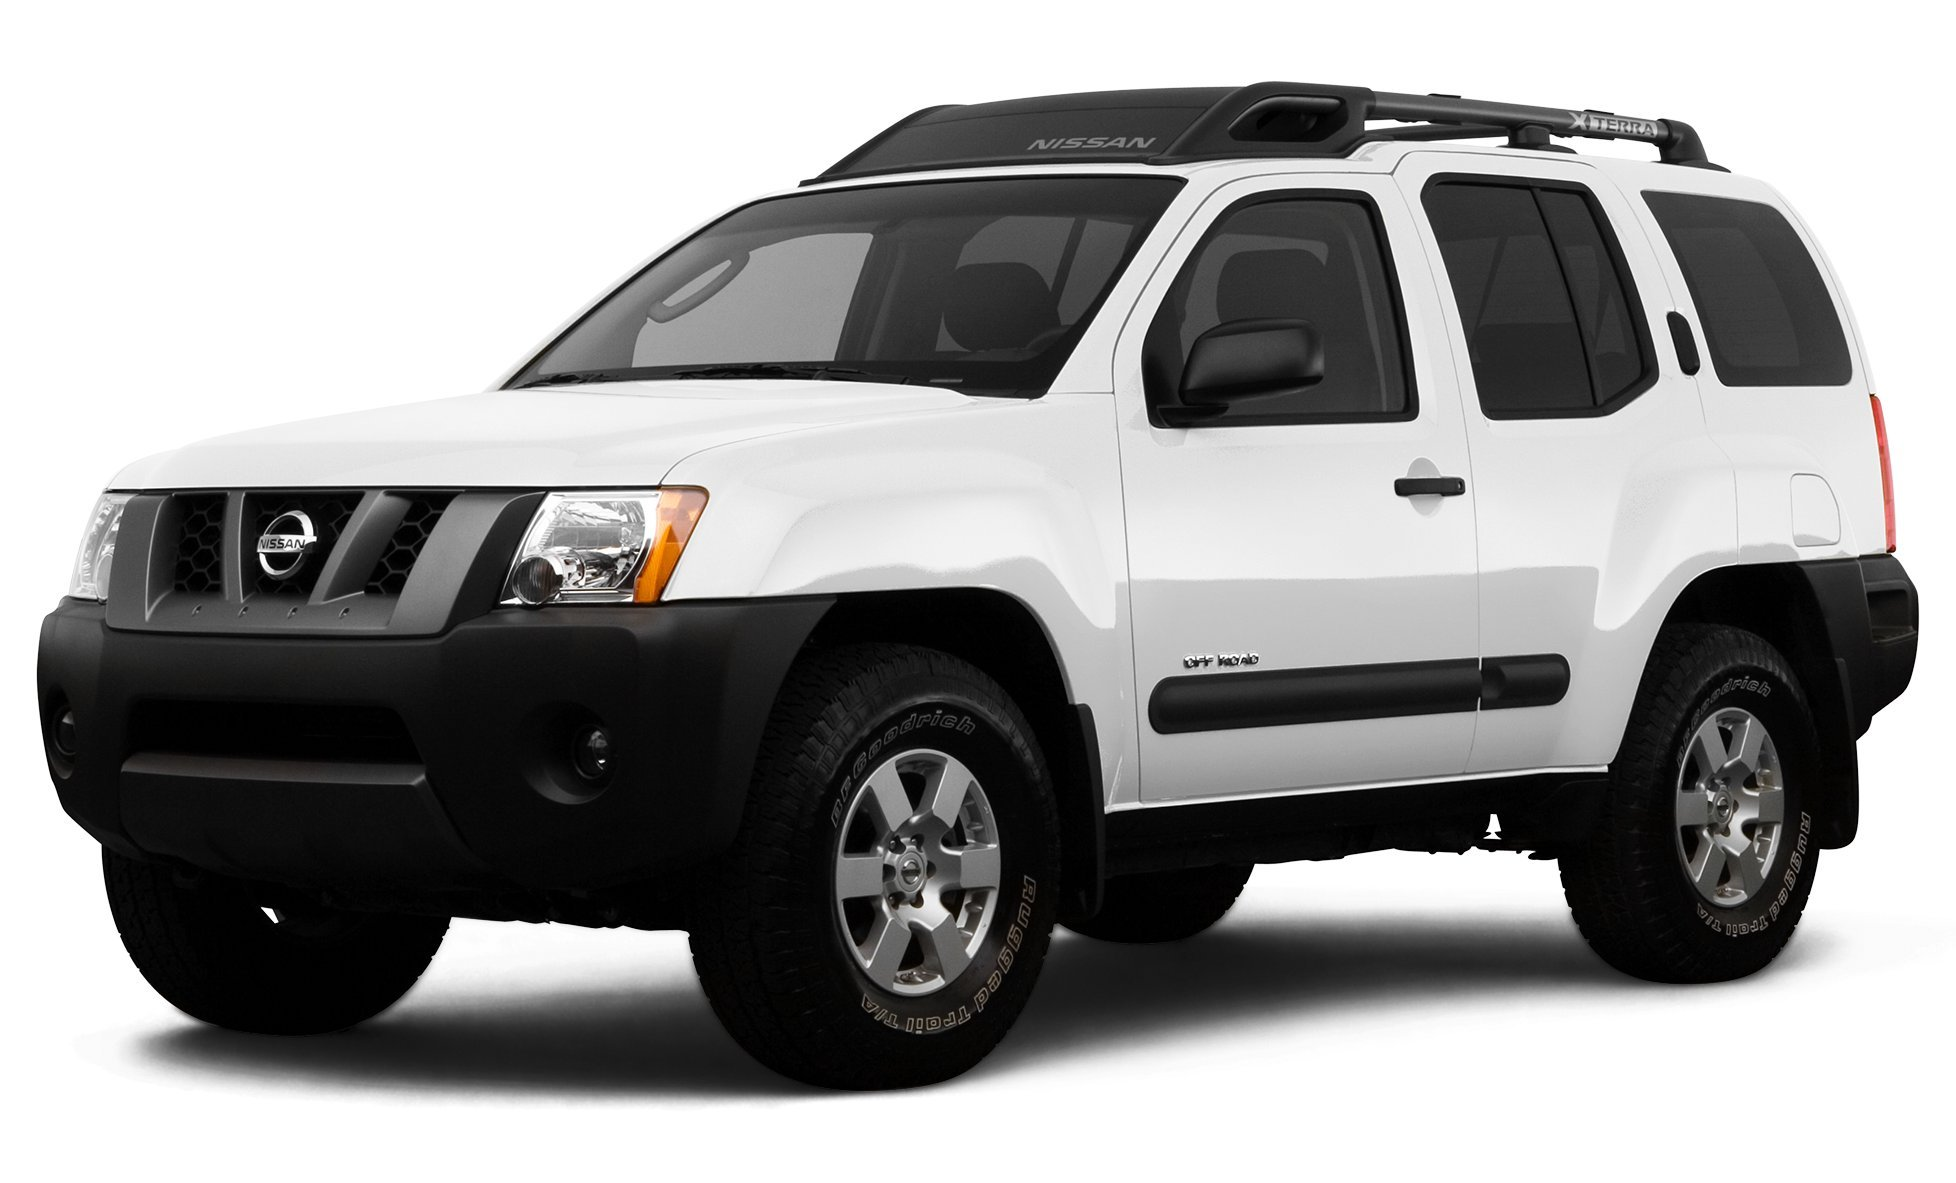 2007 Nissan Xterra Off Road, 4-Wheel Drive 4-Door Automatic Transmission ...